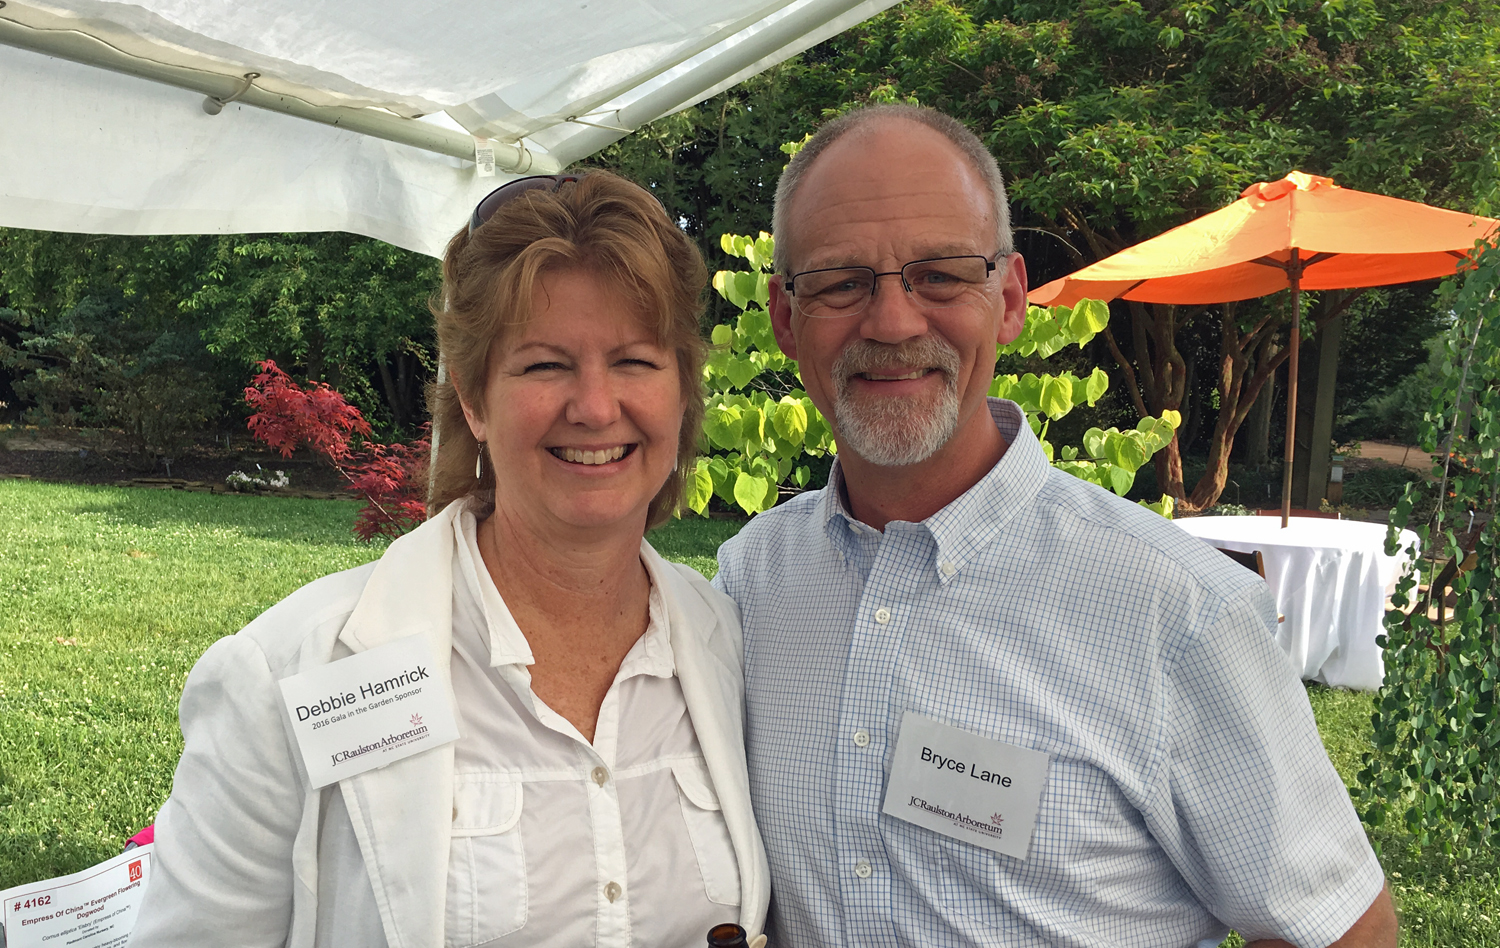 Debbie Hamrick and Bryce Lane enjoyed talking plants and perusing the auction tents.